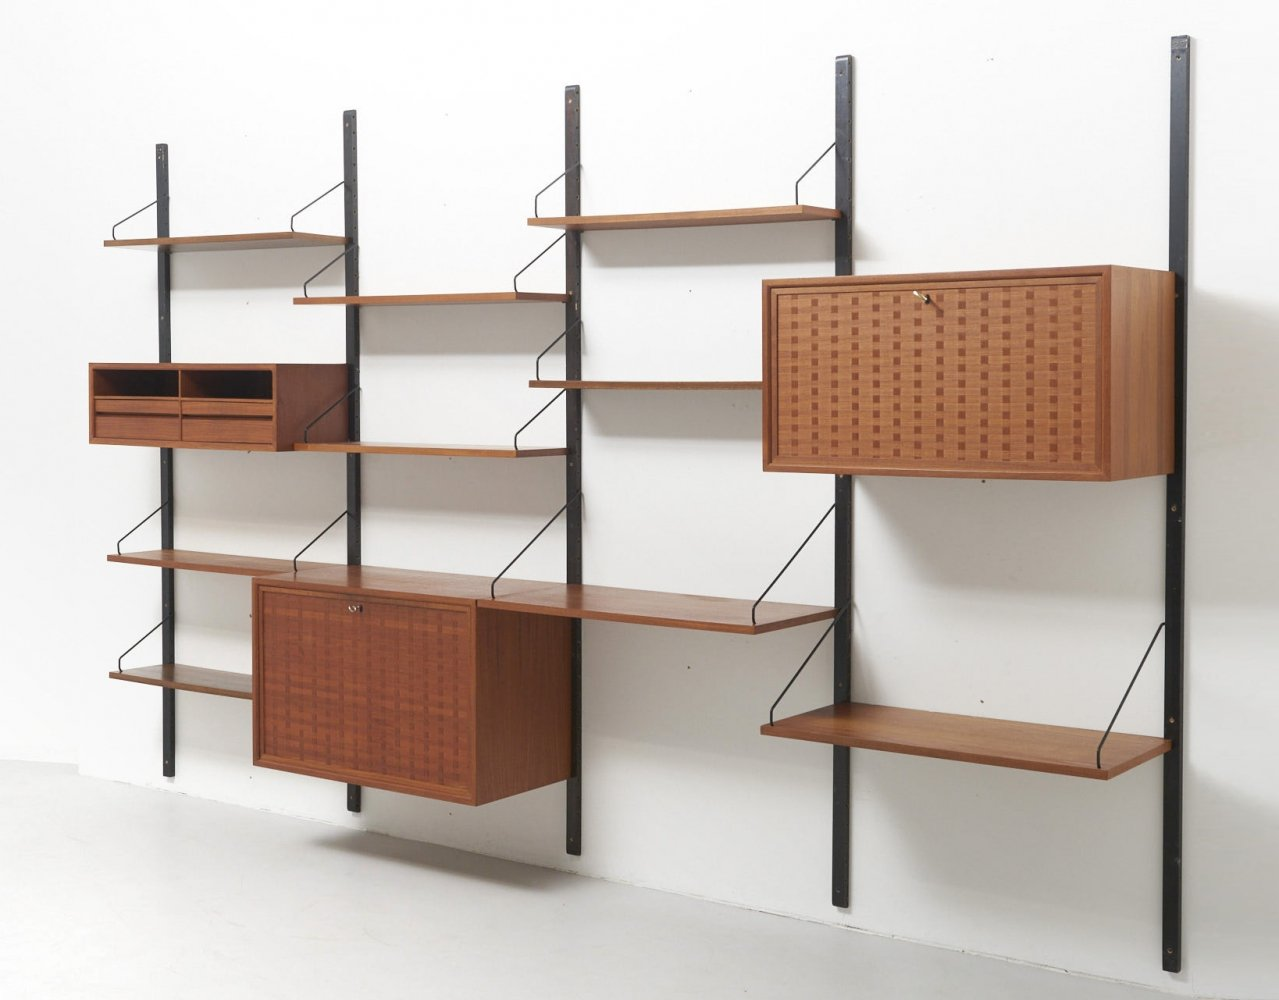 Wall Shelving Unit in Teak by Poul Cadovius for Royal System, Denmark 1950